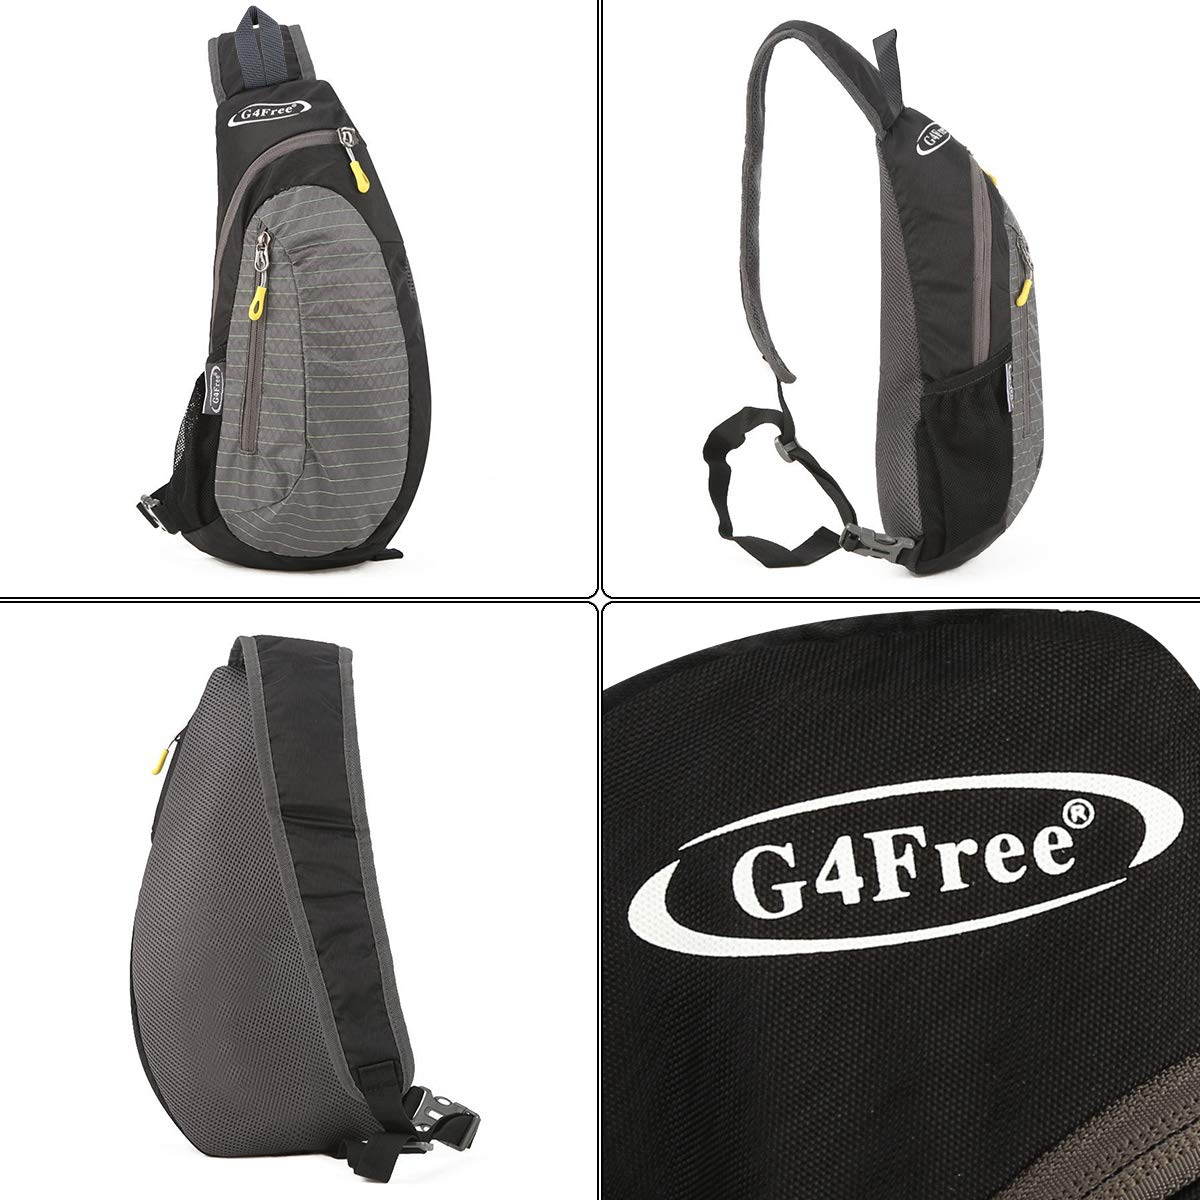 G4Free Sling Bag, Casual Cross Body Bag Outdoor Shoulder Backpack Chest Pack with One Adjustable Strap for Men Cycling Hiking(Black-Grey) by G4Free (Image #3)